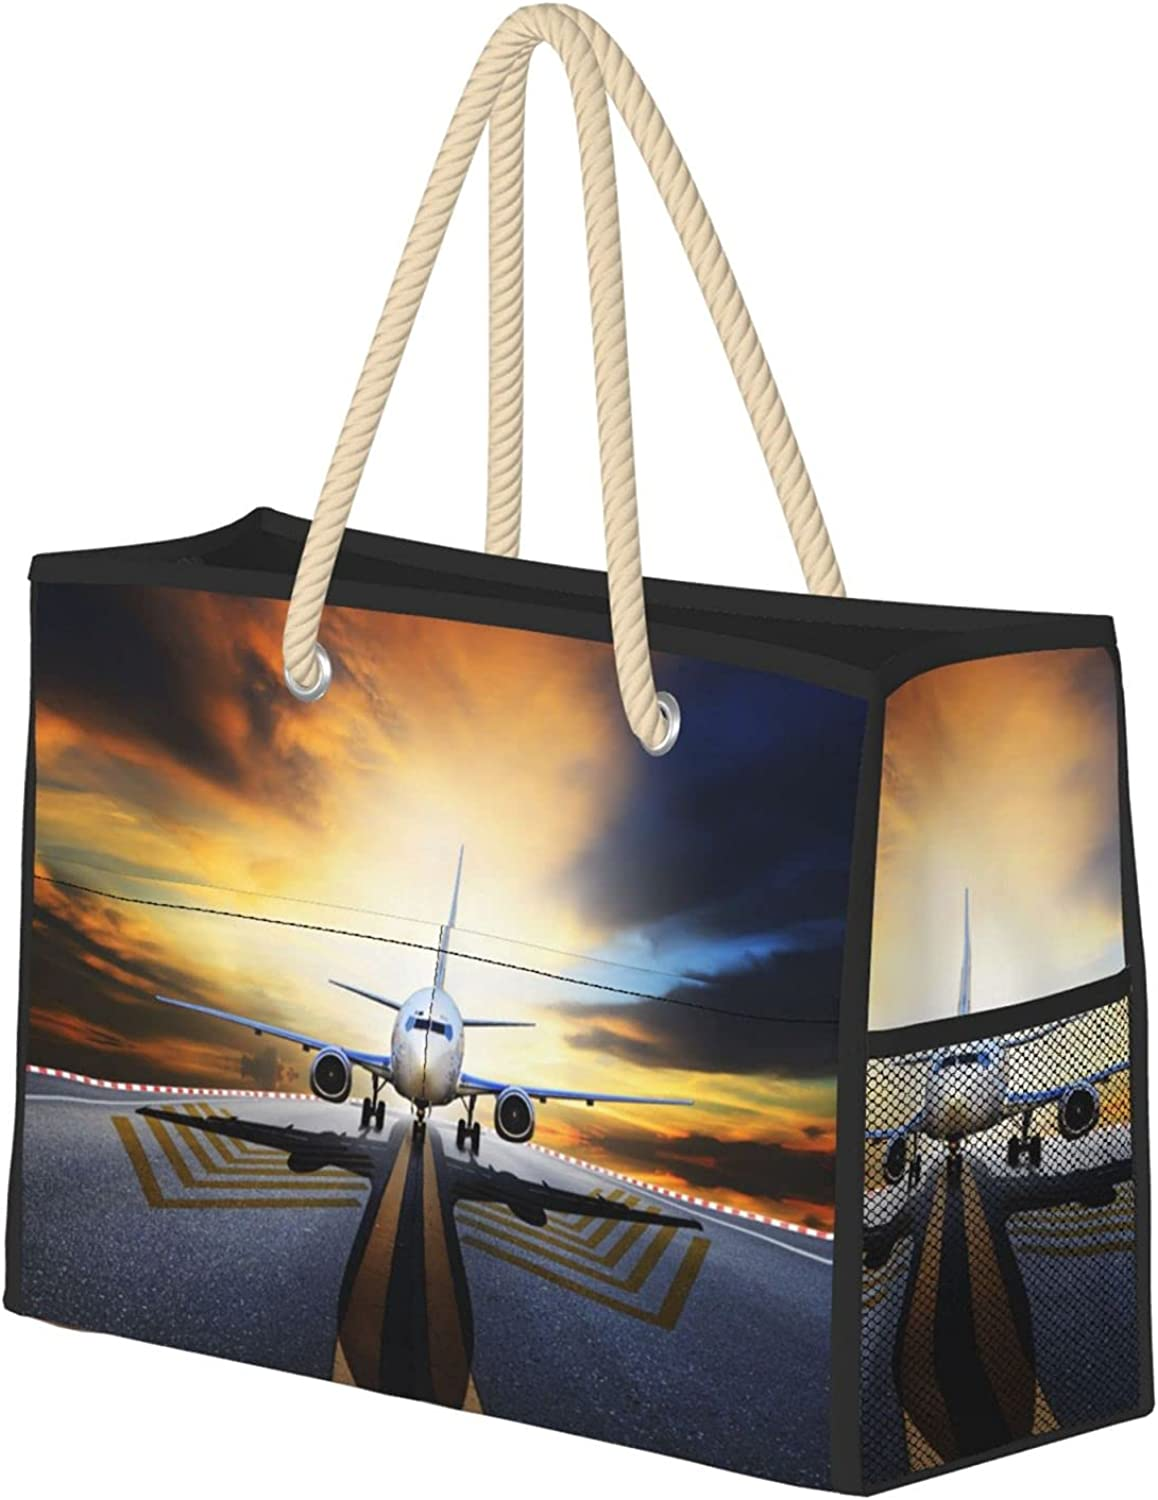 Airport airplane Beach Chicago Mall Bag Foldable Large 5 ☆ very popular Extra Tote